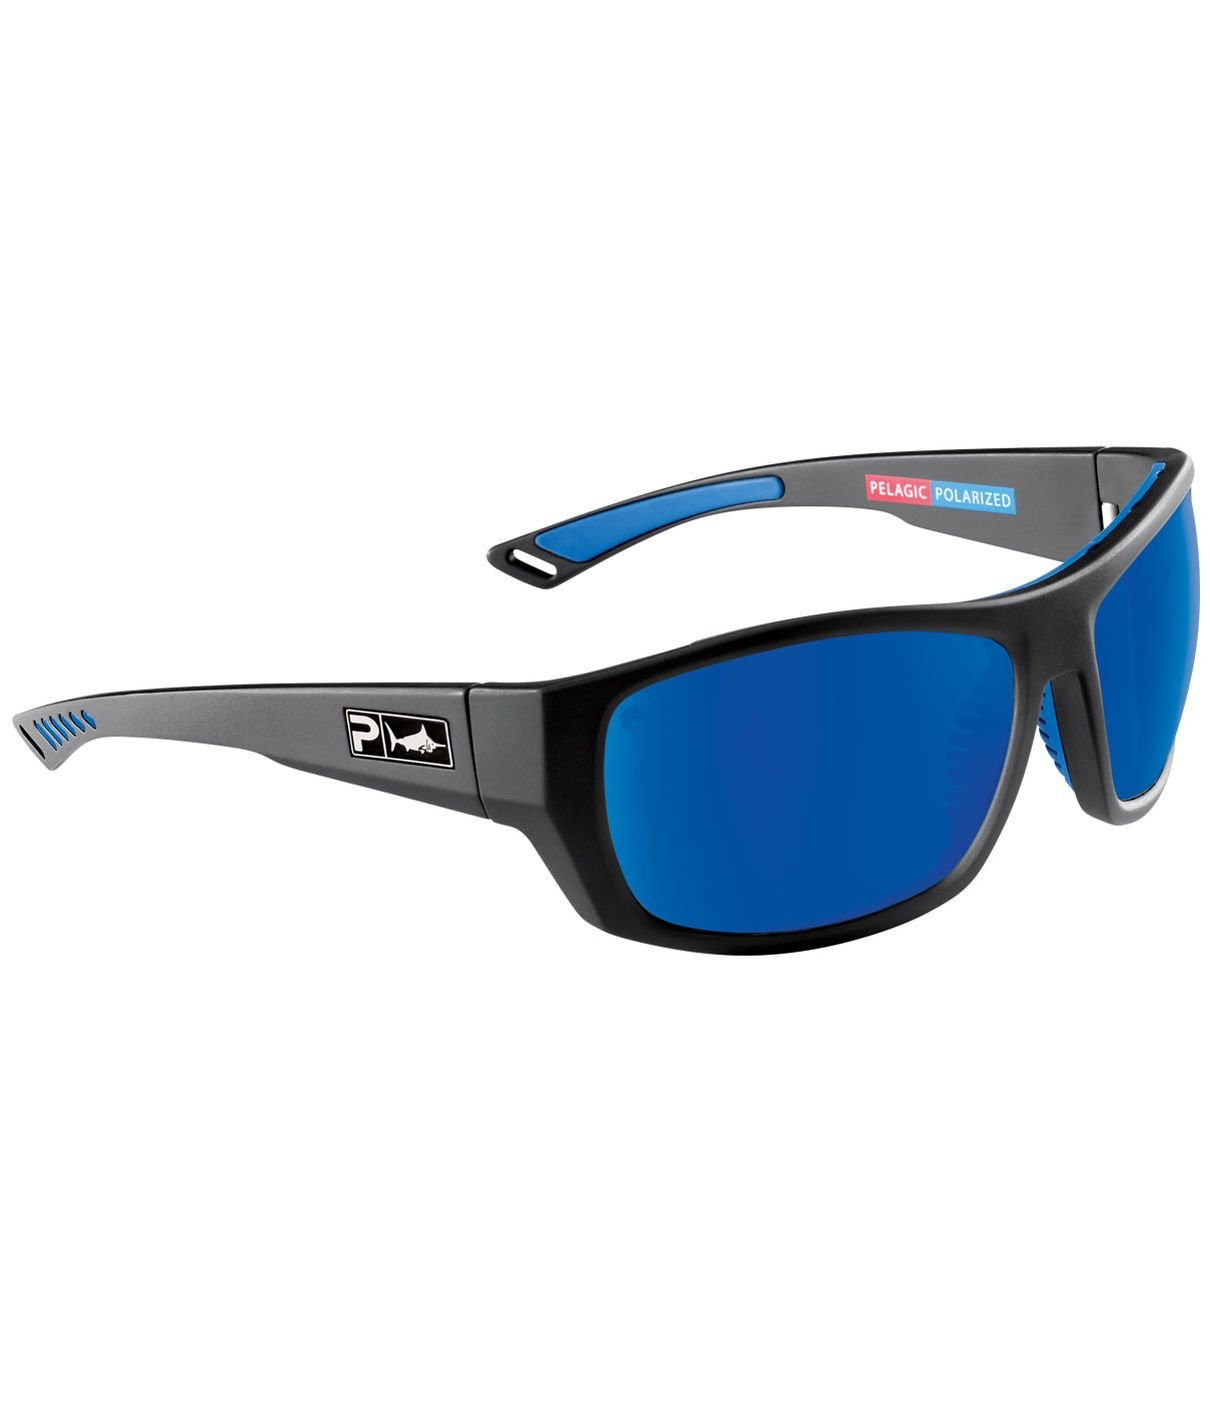 6310da44620 Pelagic Men s Pursuit Polarized Sunglasses for Fishing